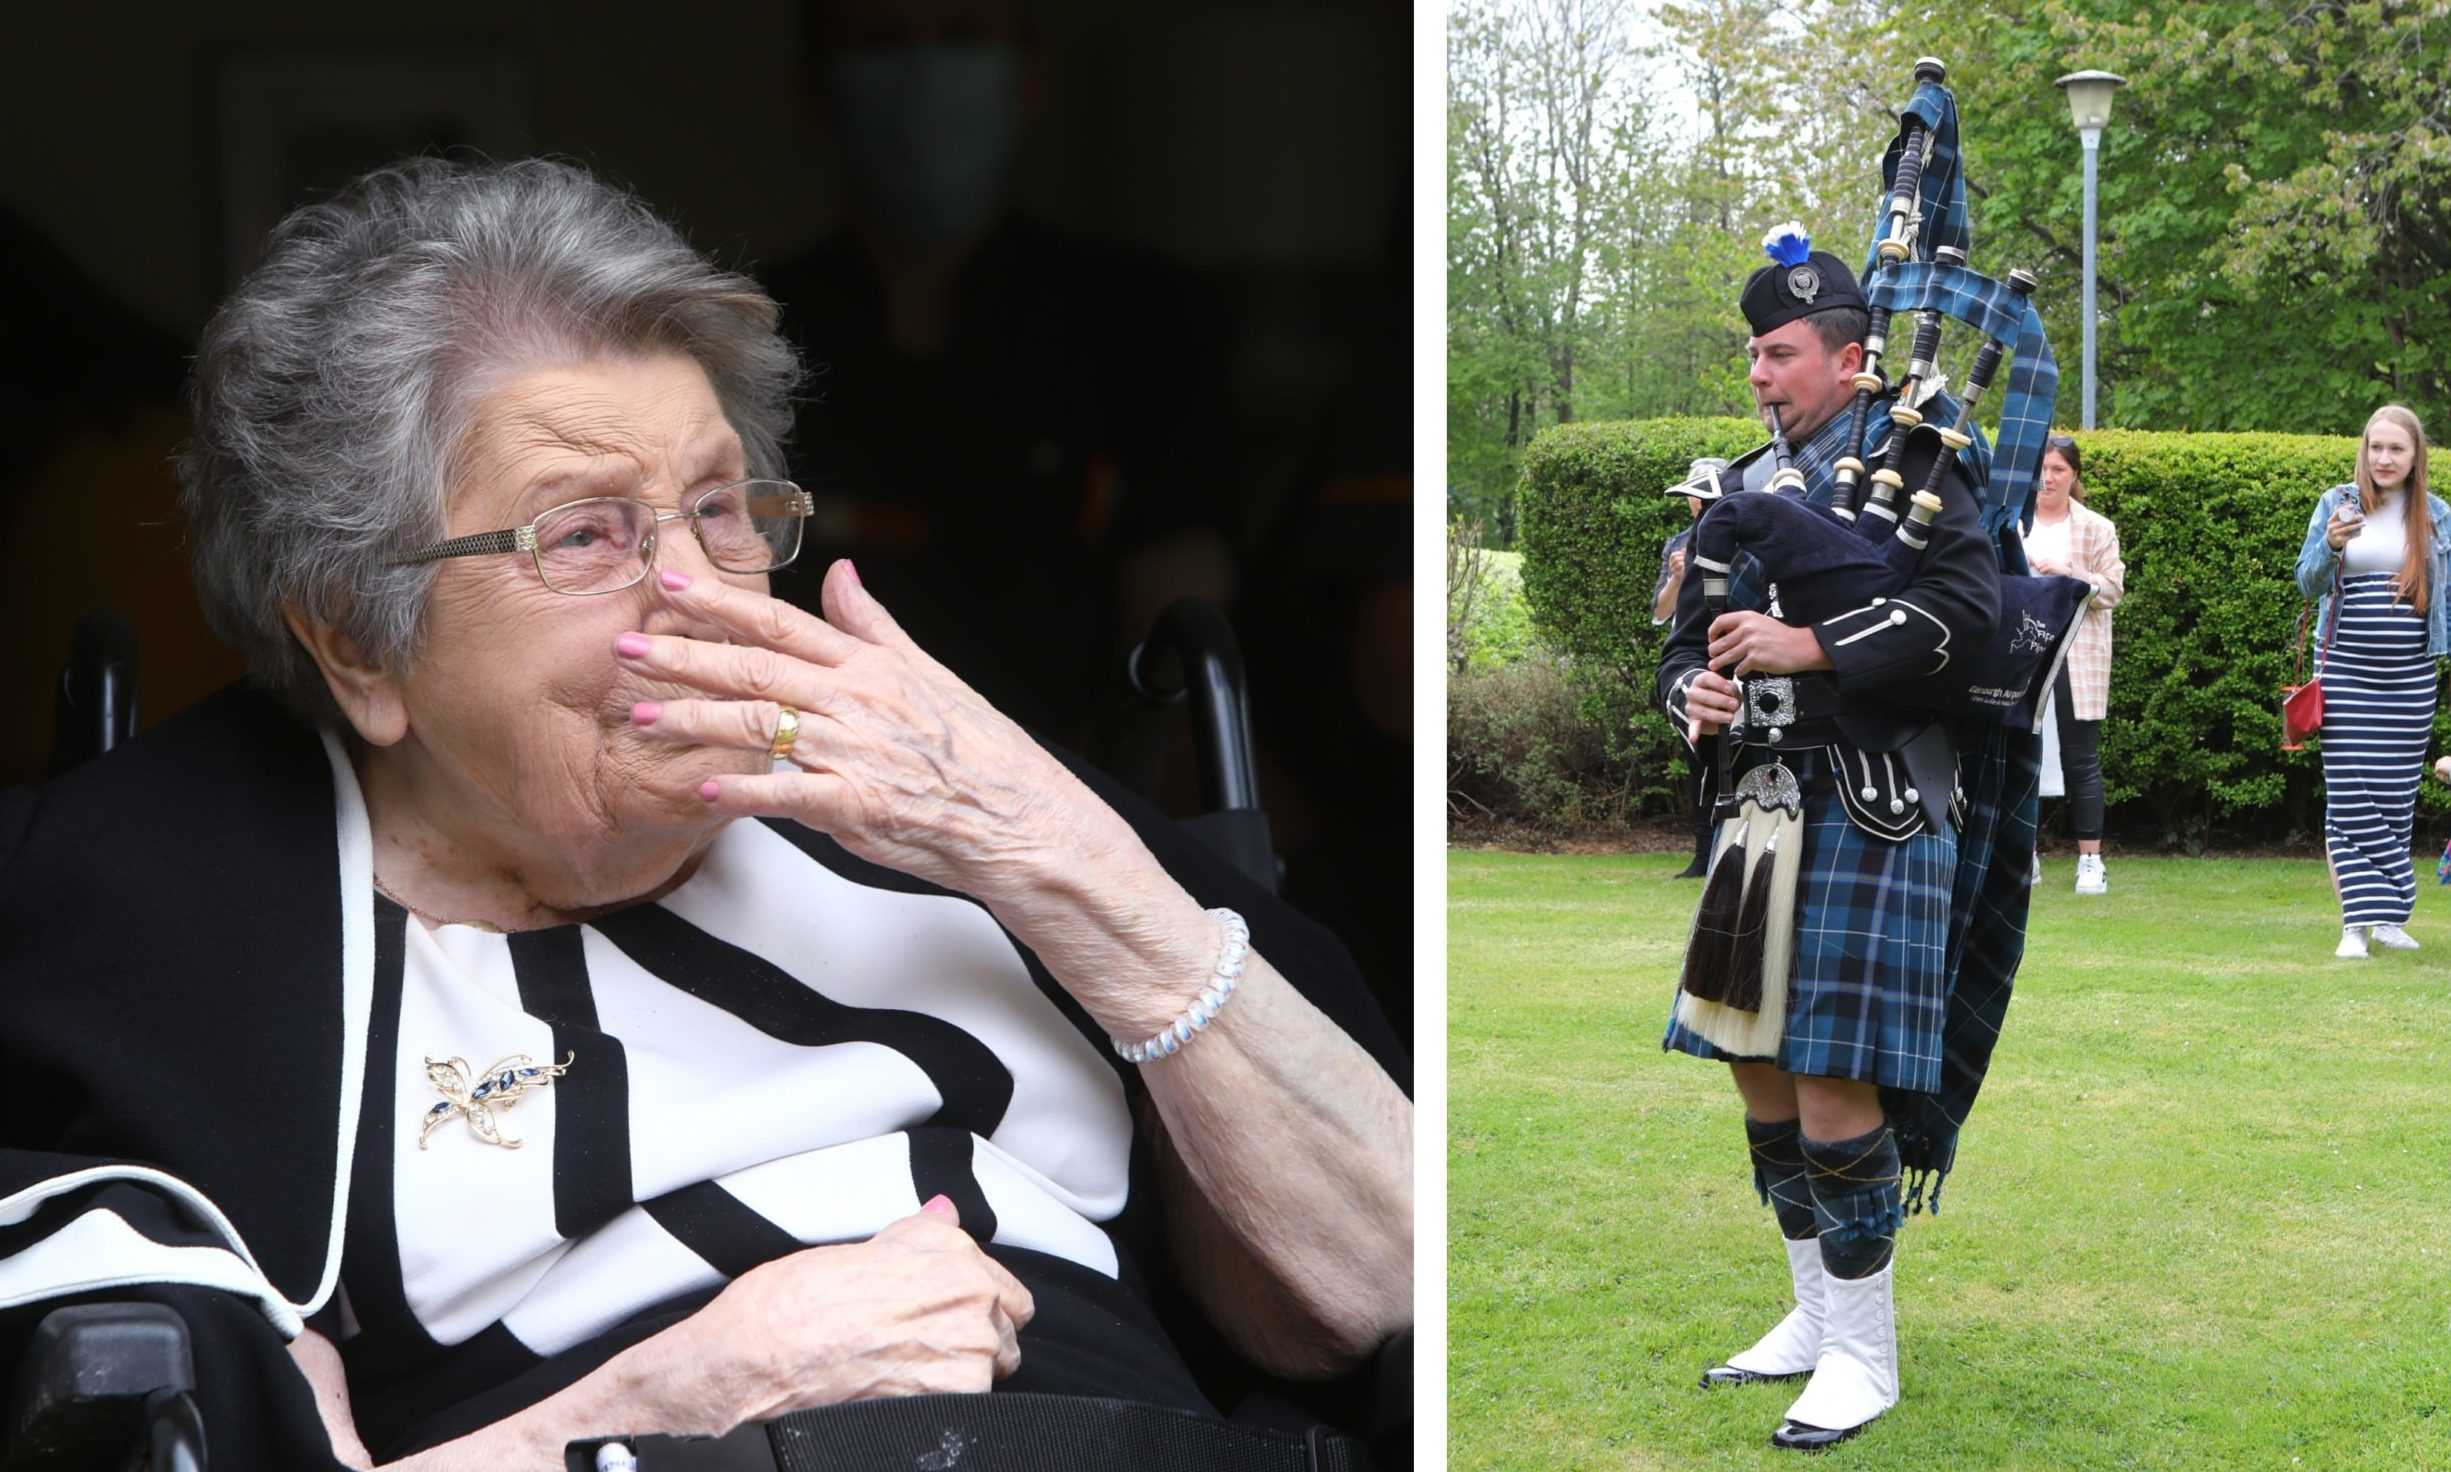 Doreen celebrating her birthday with a tune from a piper.